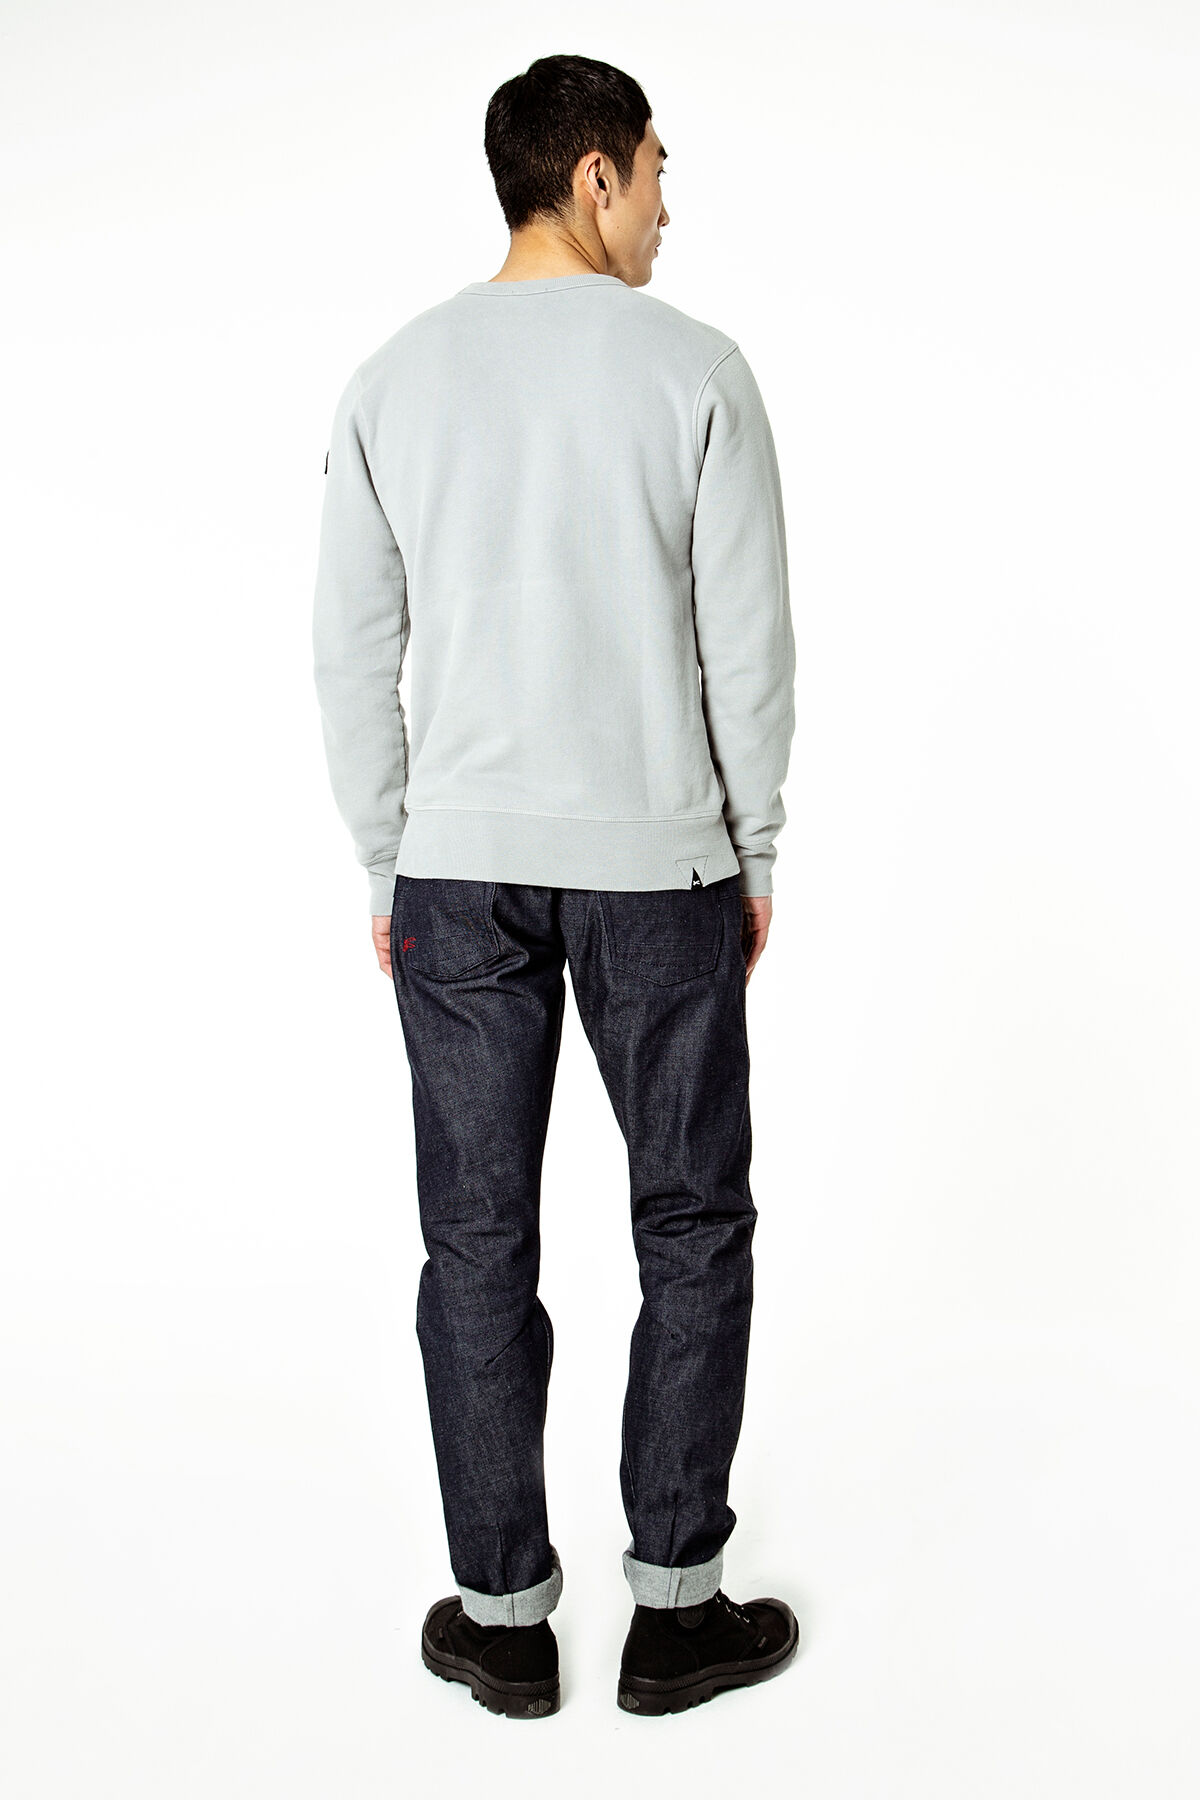 CROSS BACK Raw Selvedge Denim - Carrot Fit